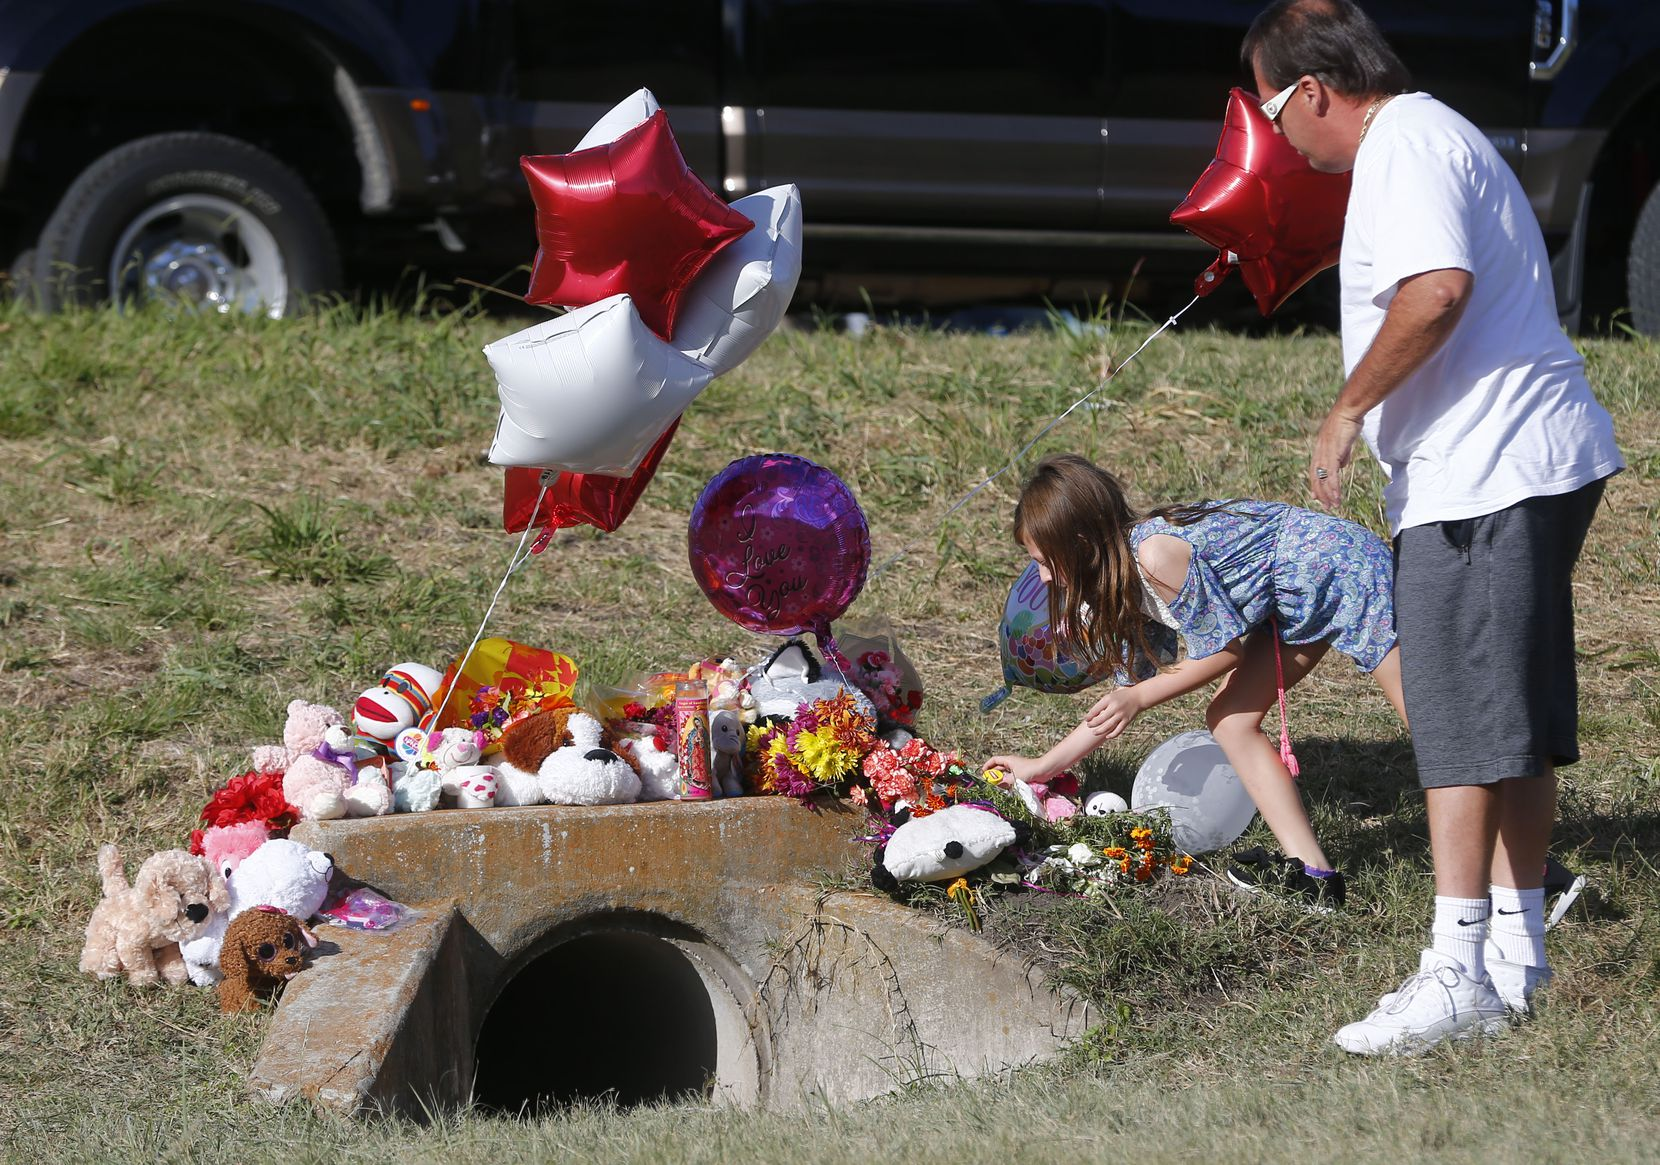 Miley Grahmann, 8, with her father Patrick Grahmann, leaves a bear with a jar of Carmex in the area where the body of Sherin Mathews was found.